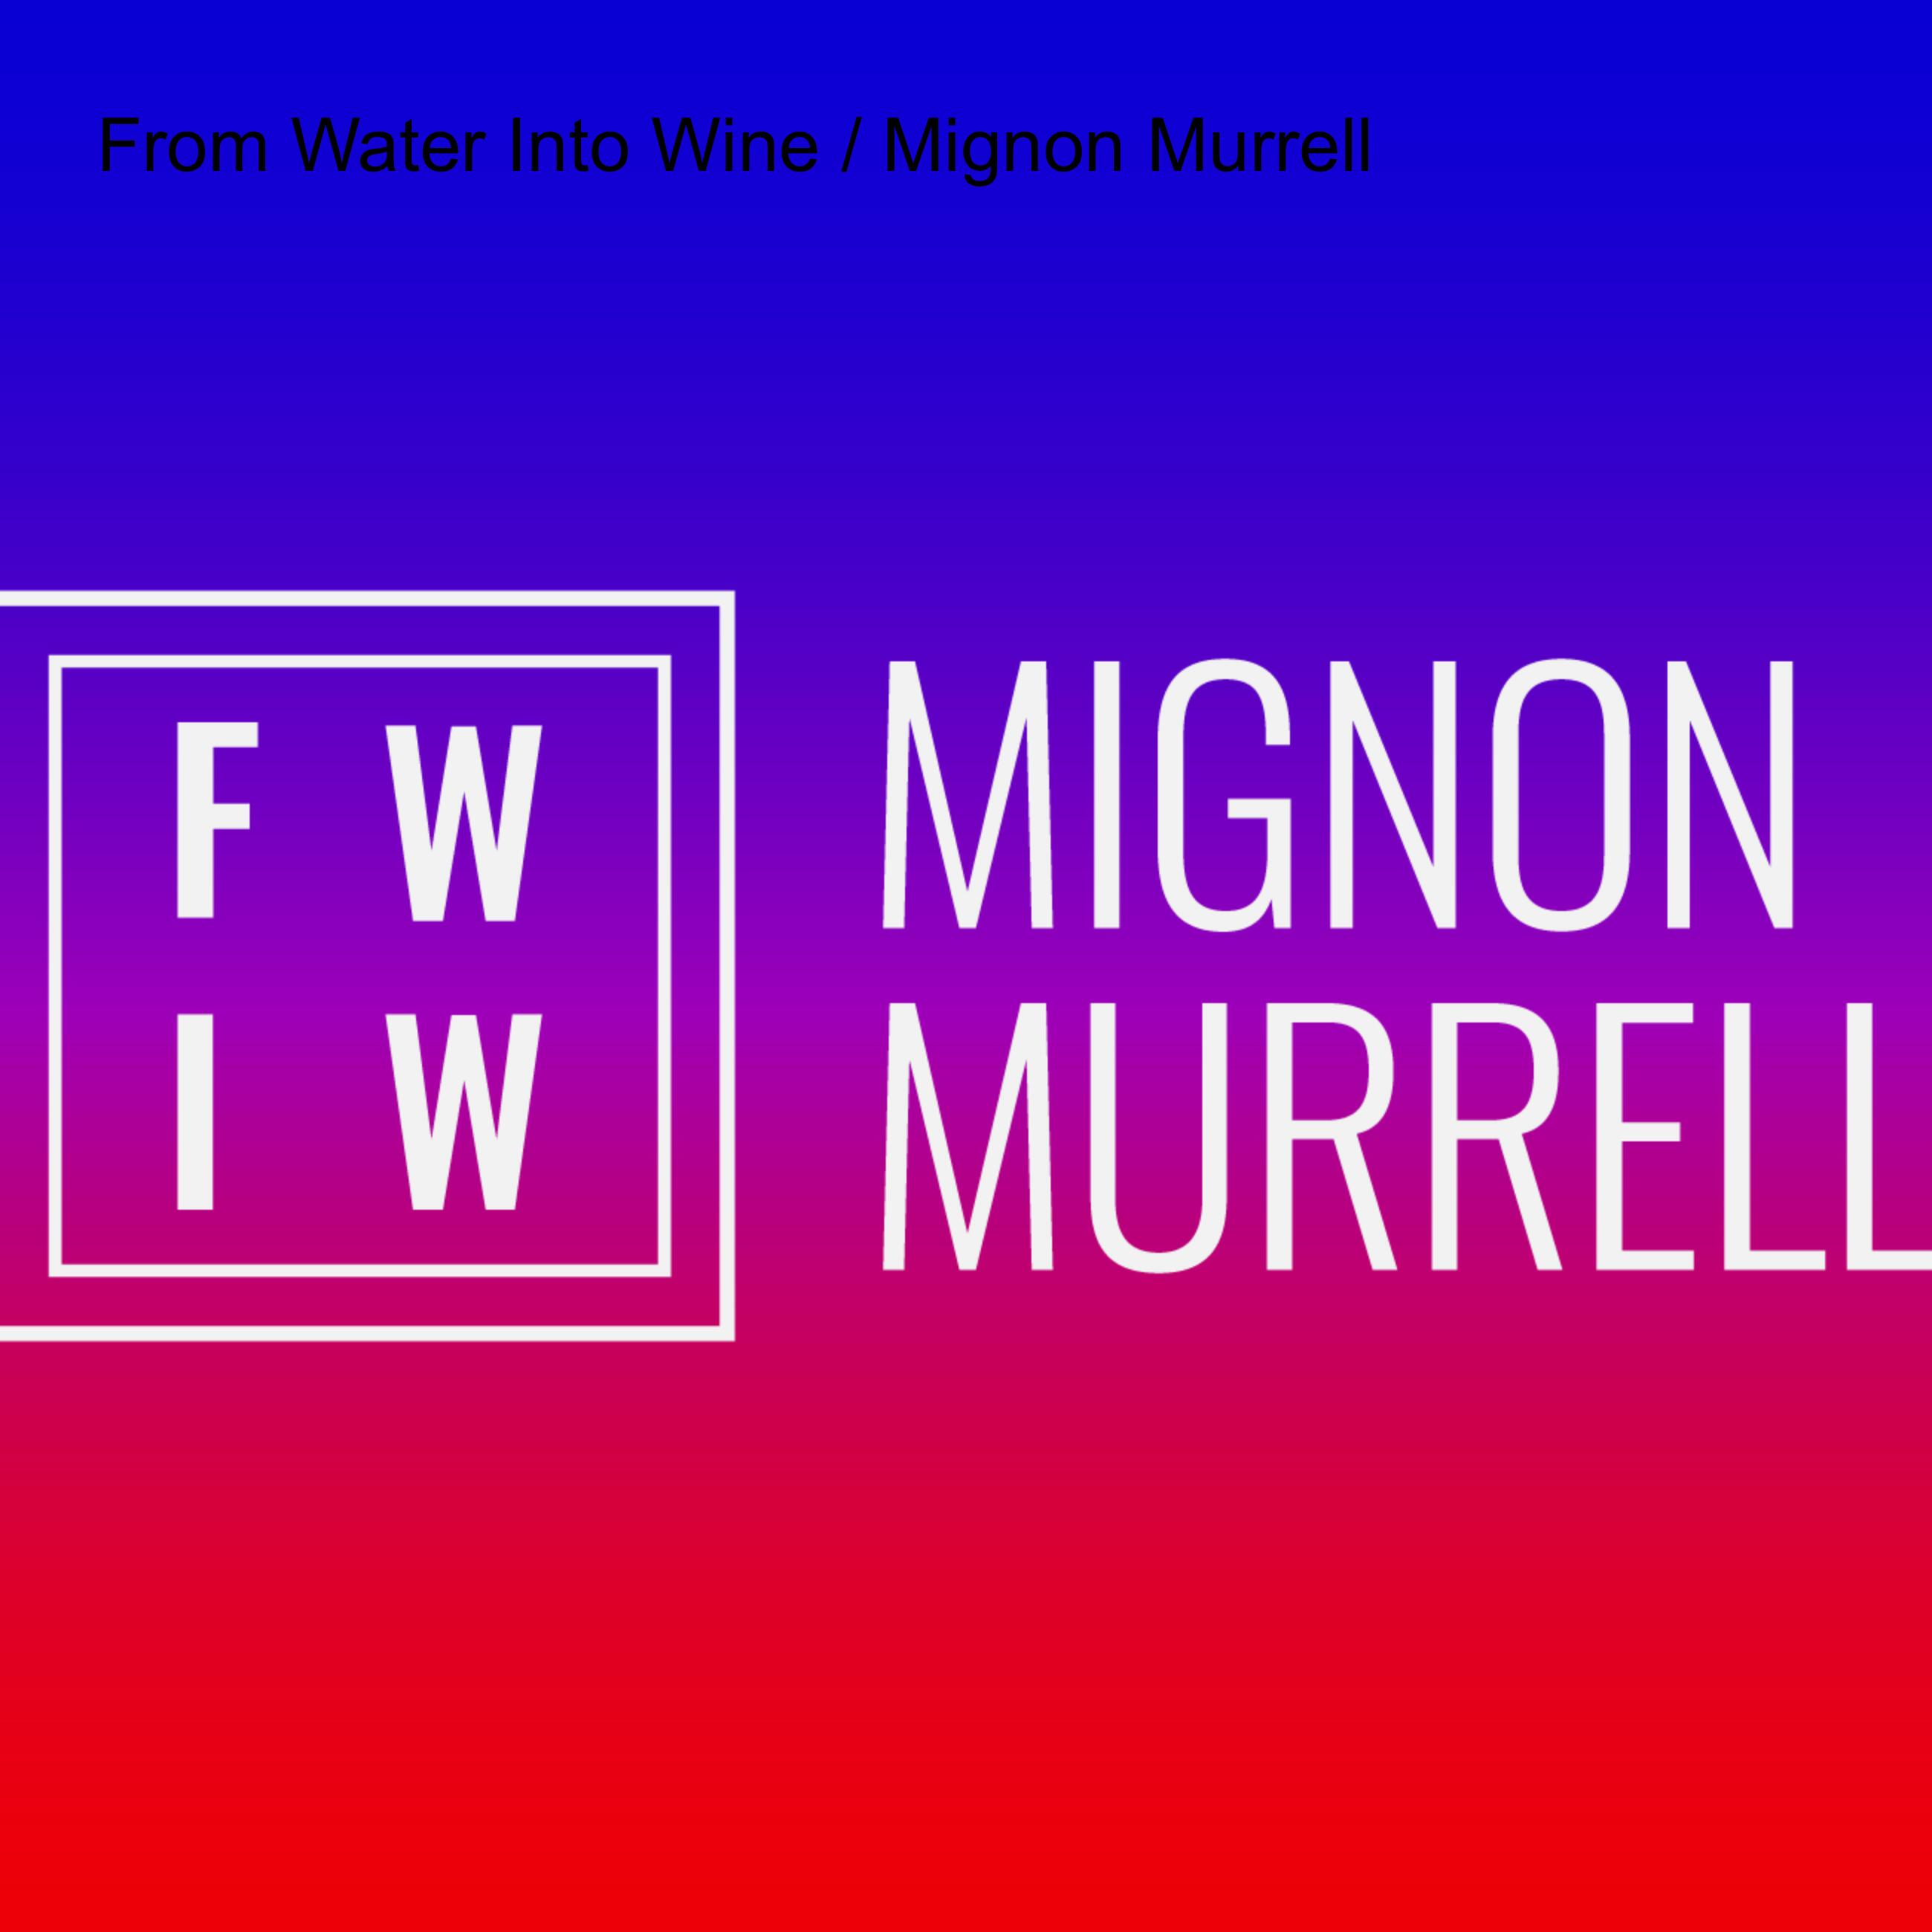 From Water Into Wine / Mignon Murrell